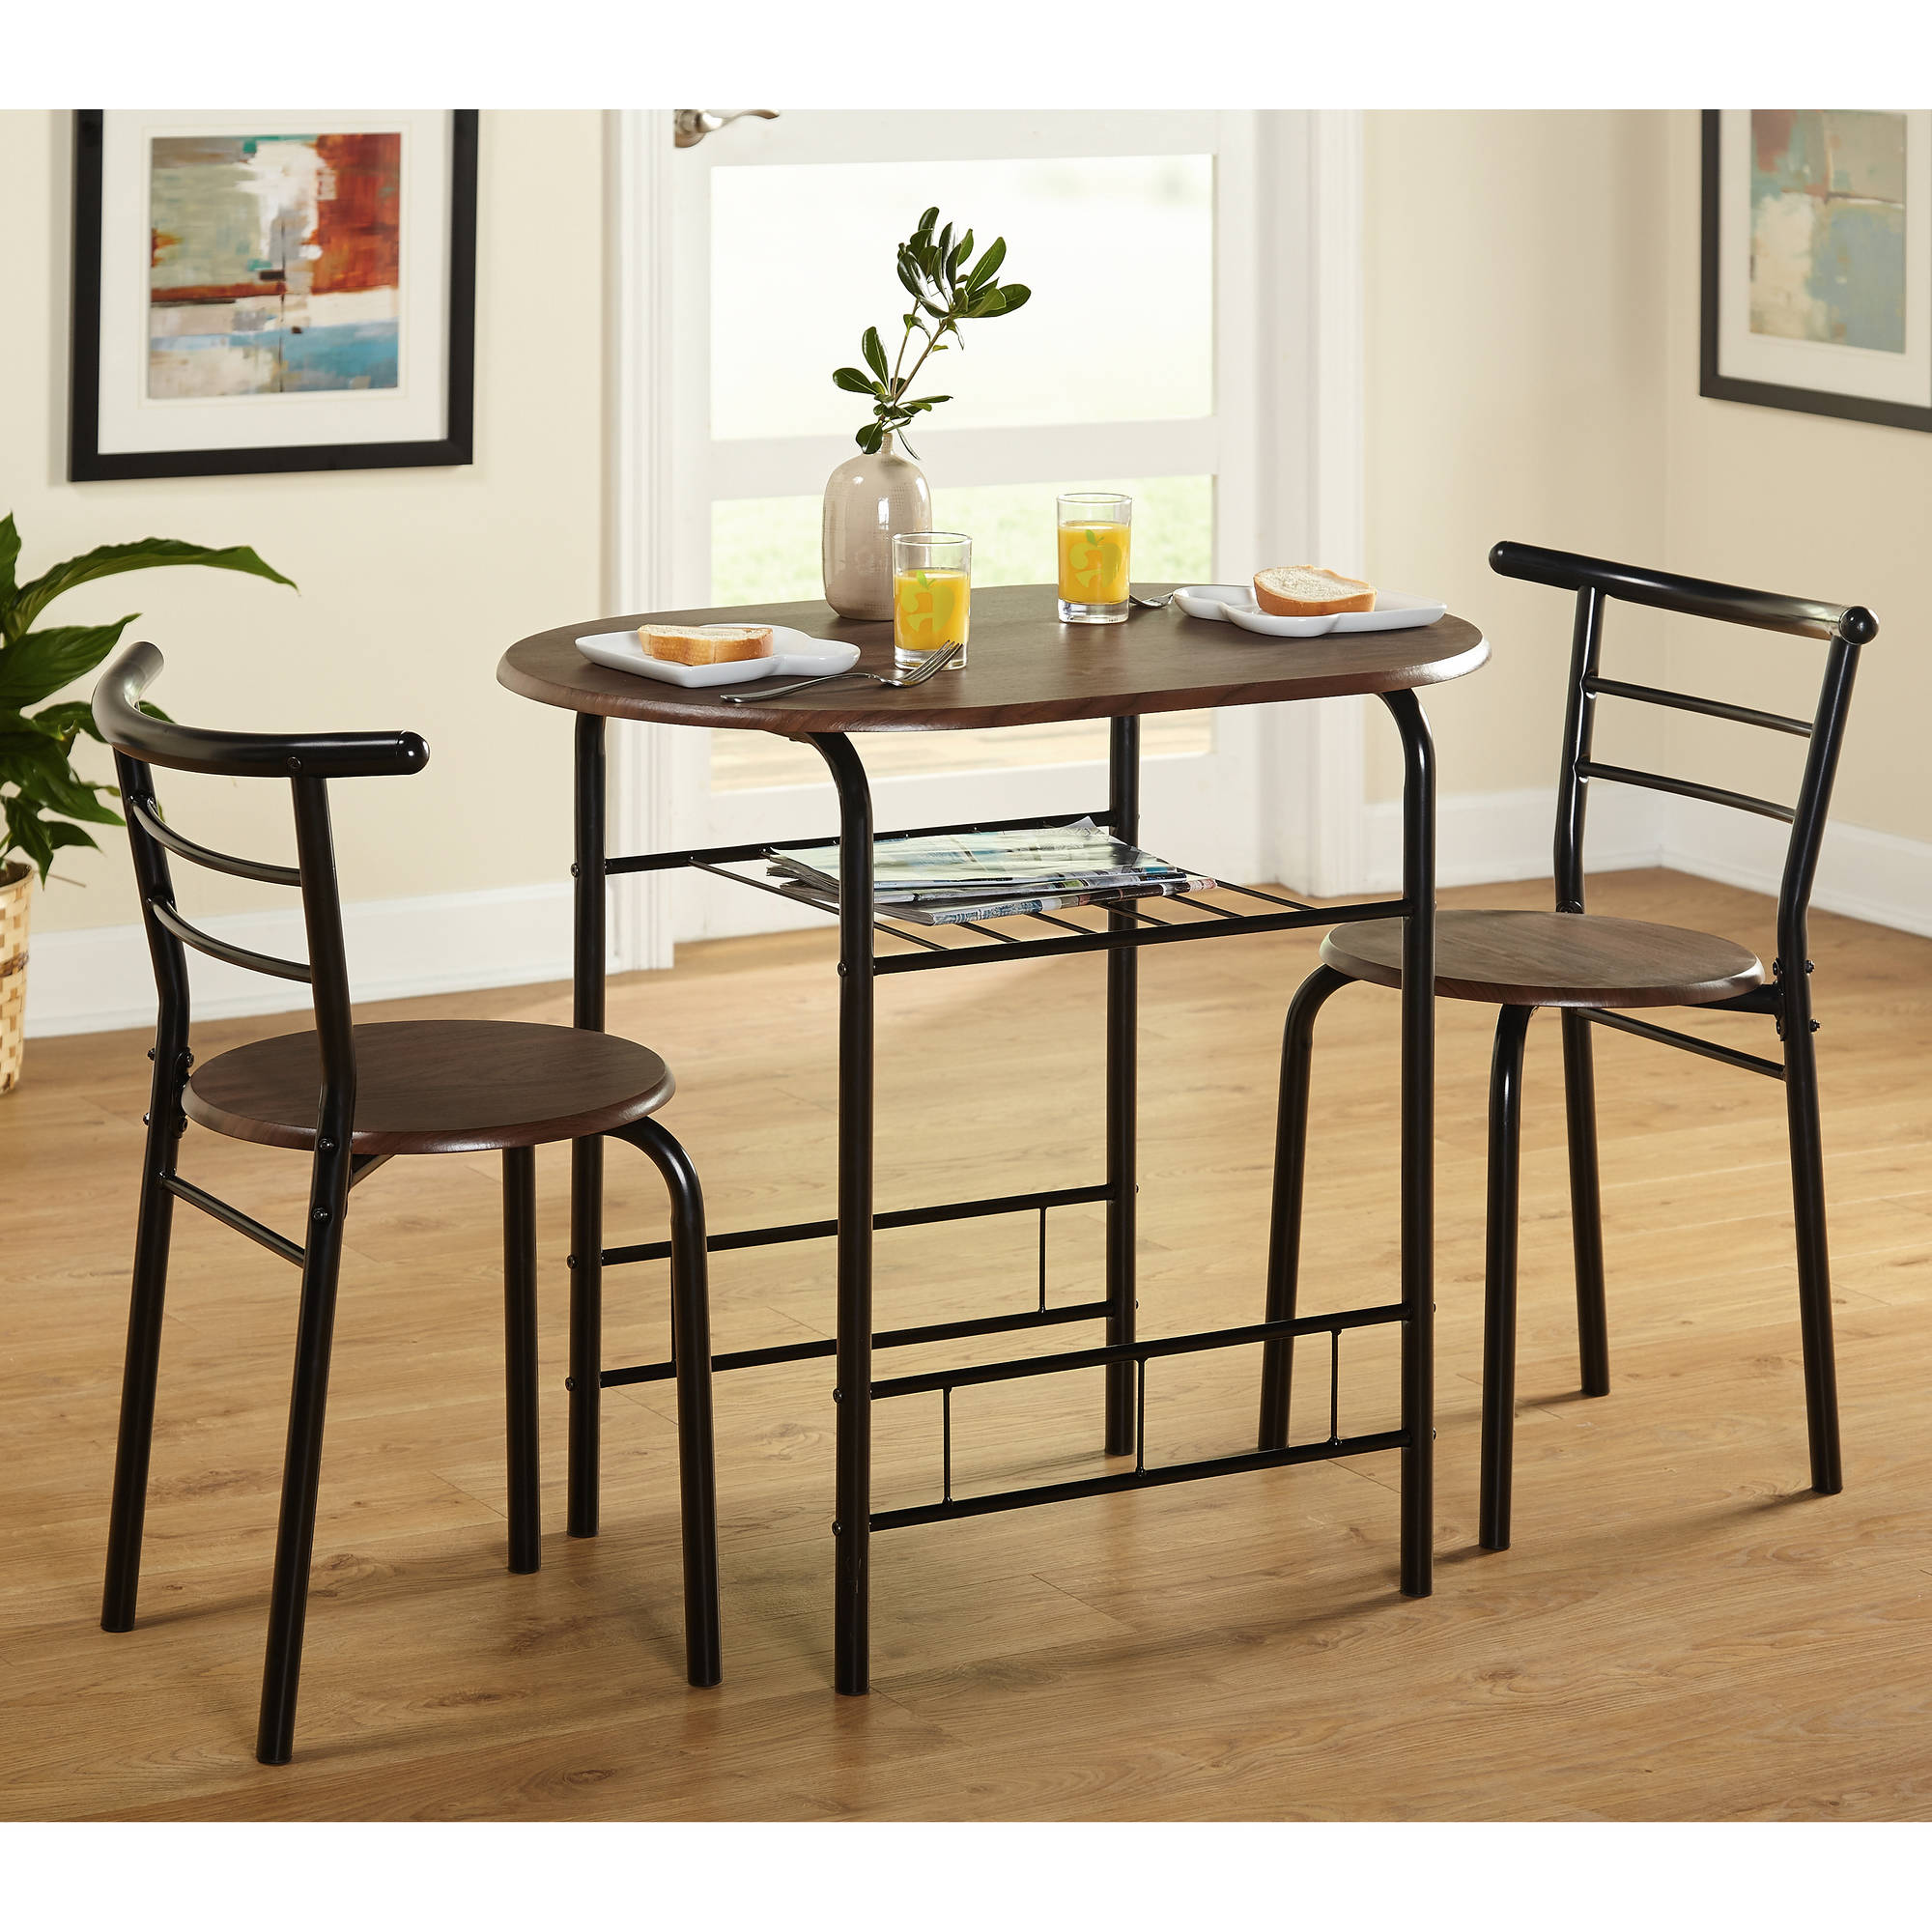 3-Piece Bistro Set, Multiple Colors